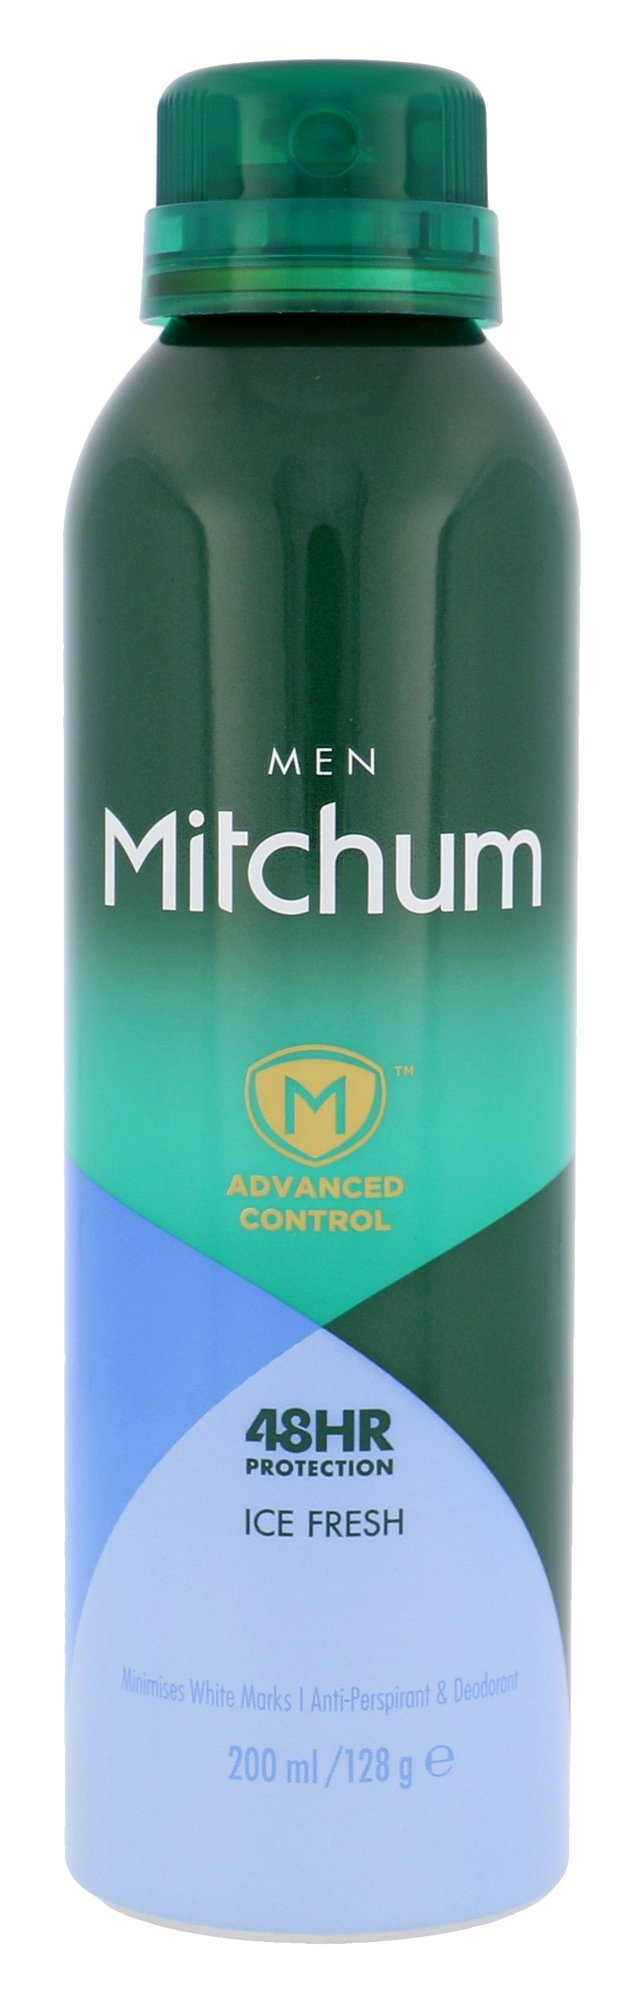 Mitchum Advanced Control 48HR Antiperspirant, M, 200 ml